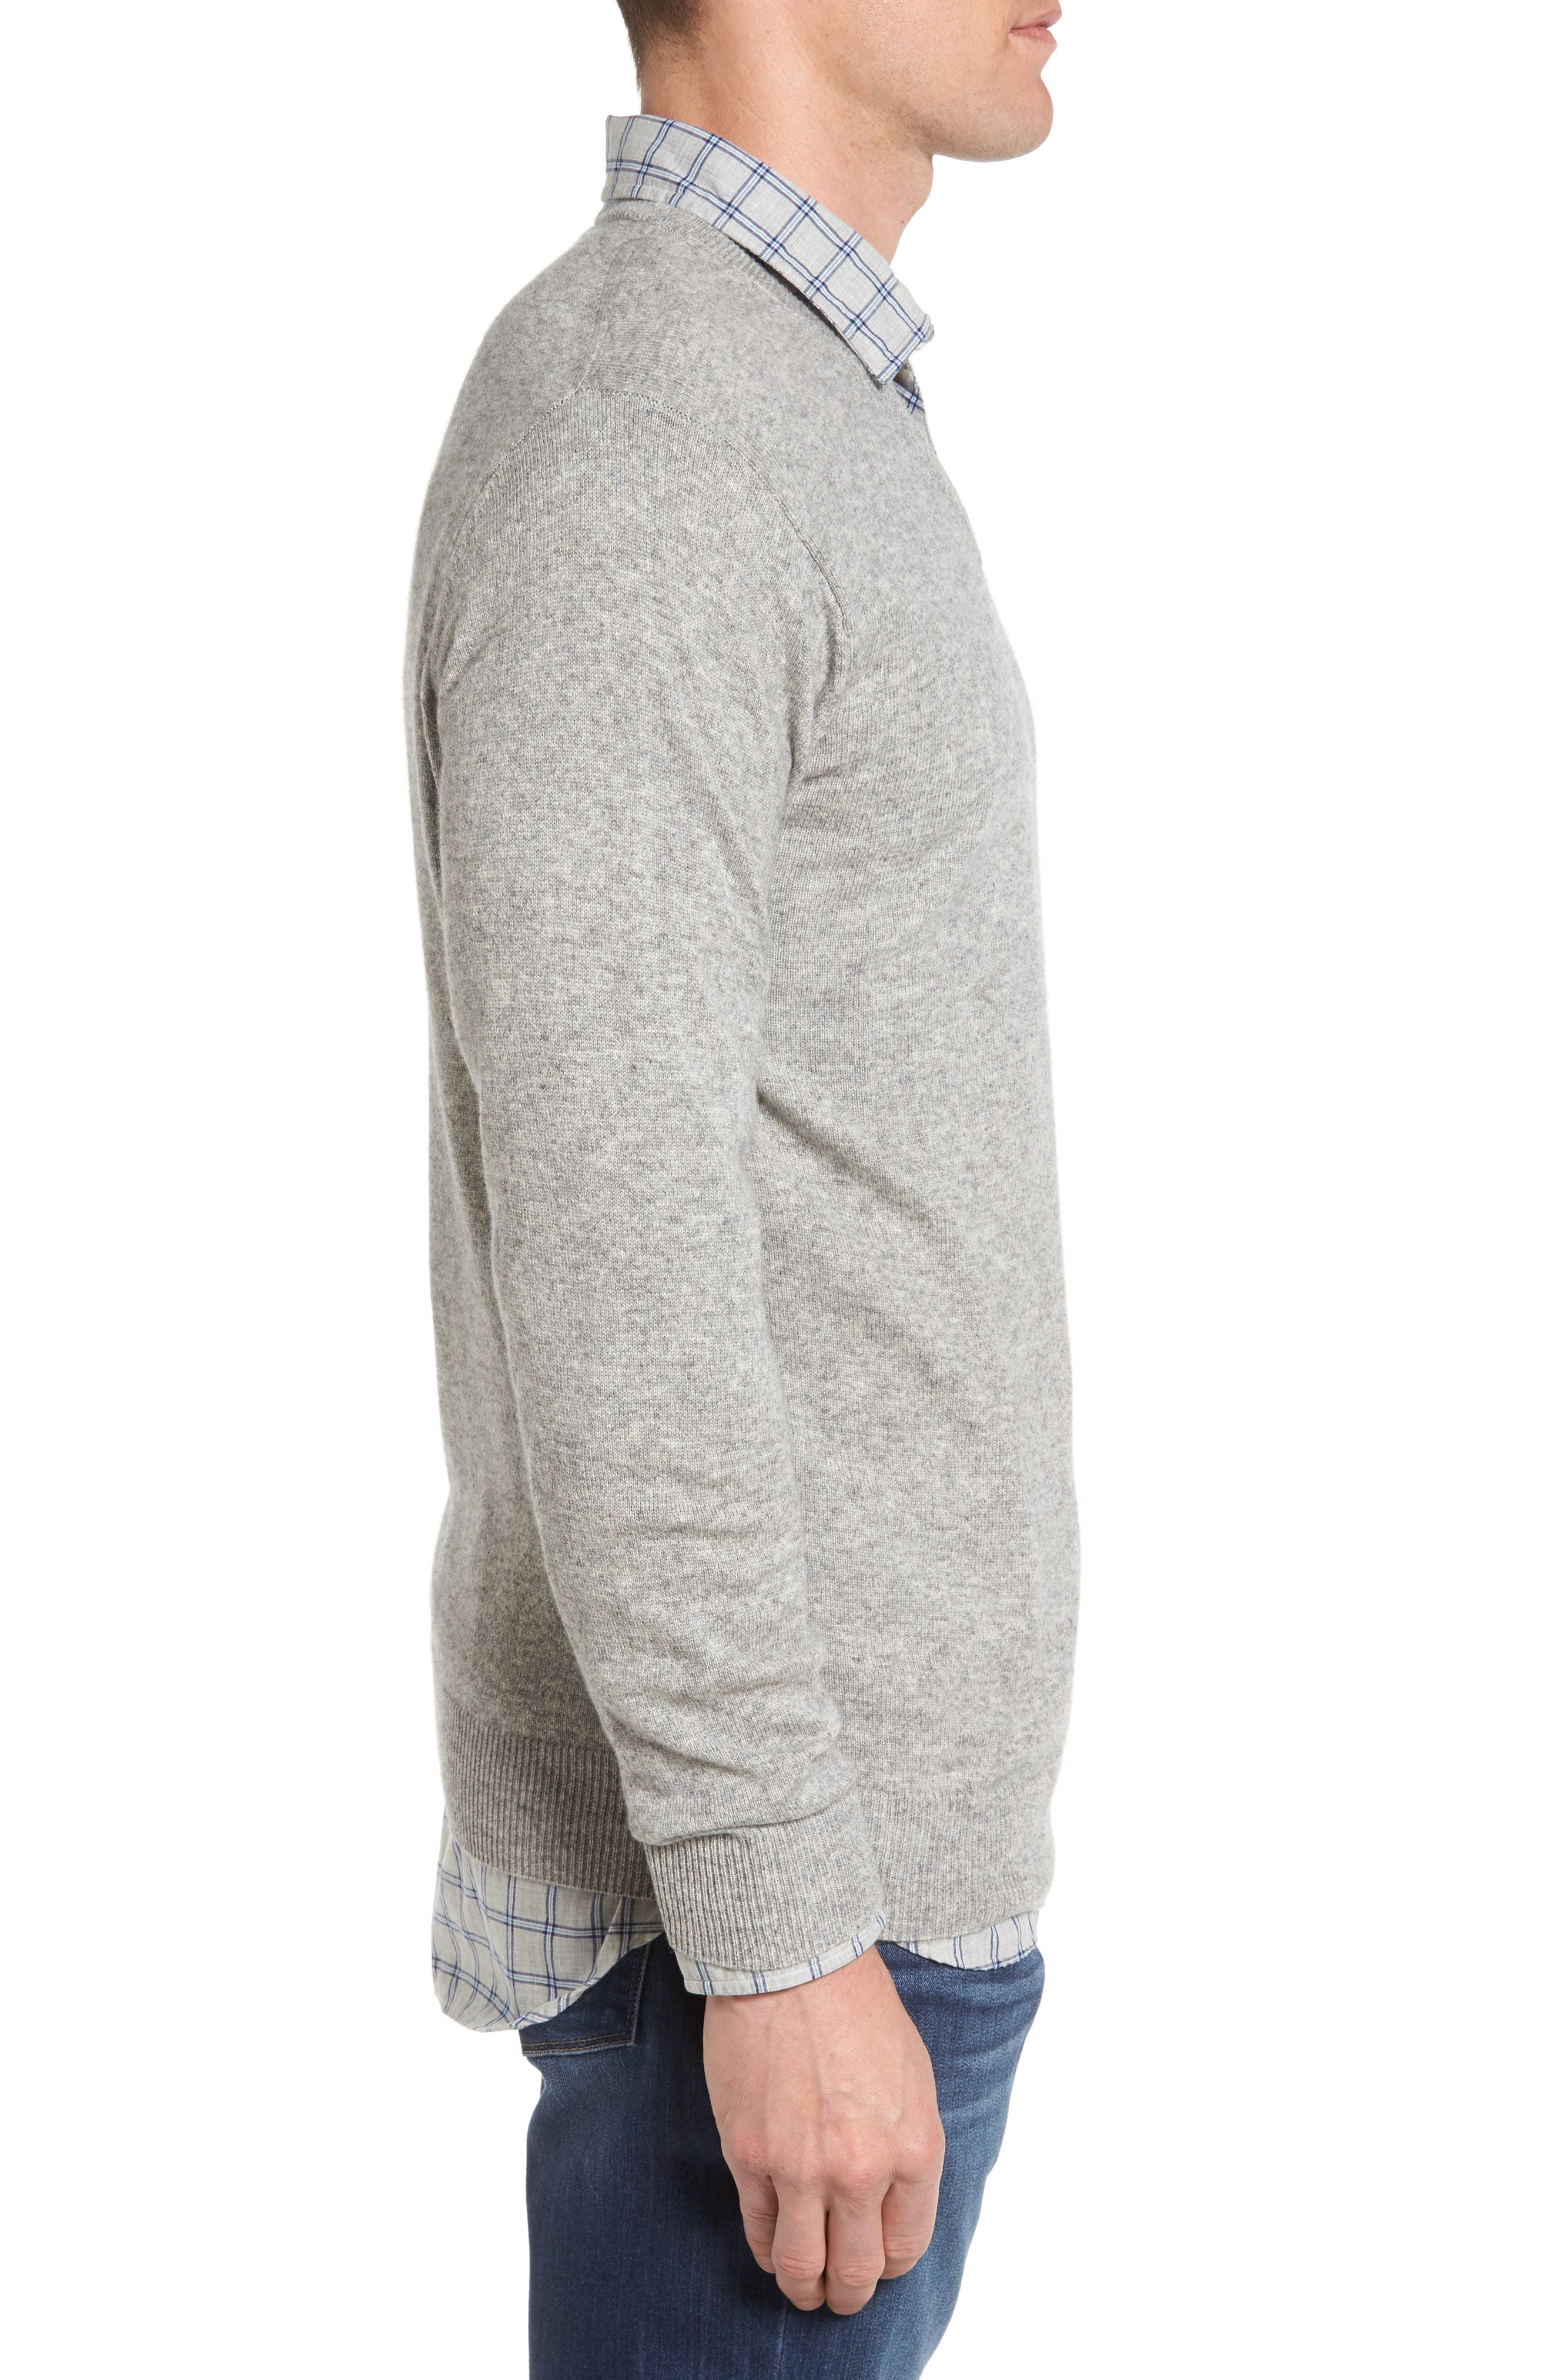 'Inchbonnie' Wool & Cashmere V-Neck Sweater,                             Alternate thumbnail 3, color,                             020